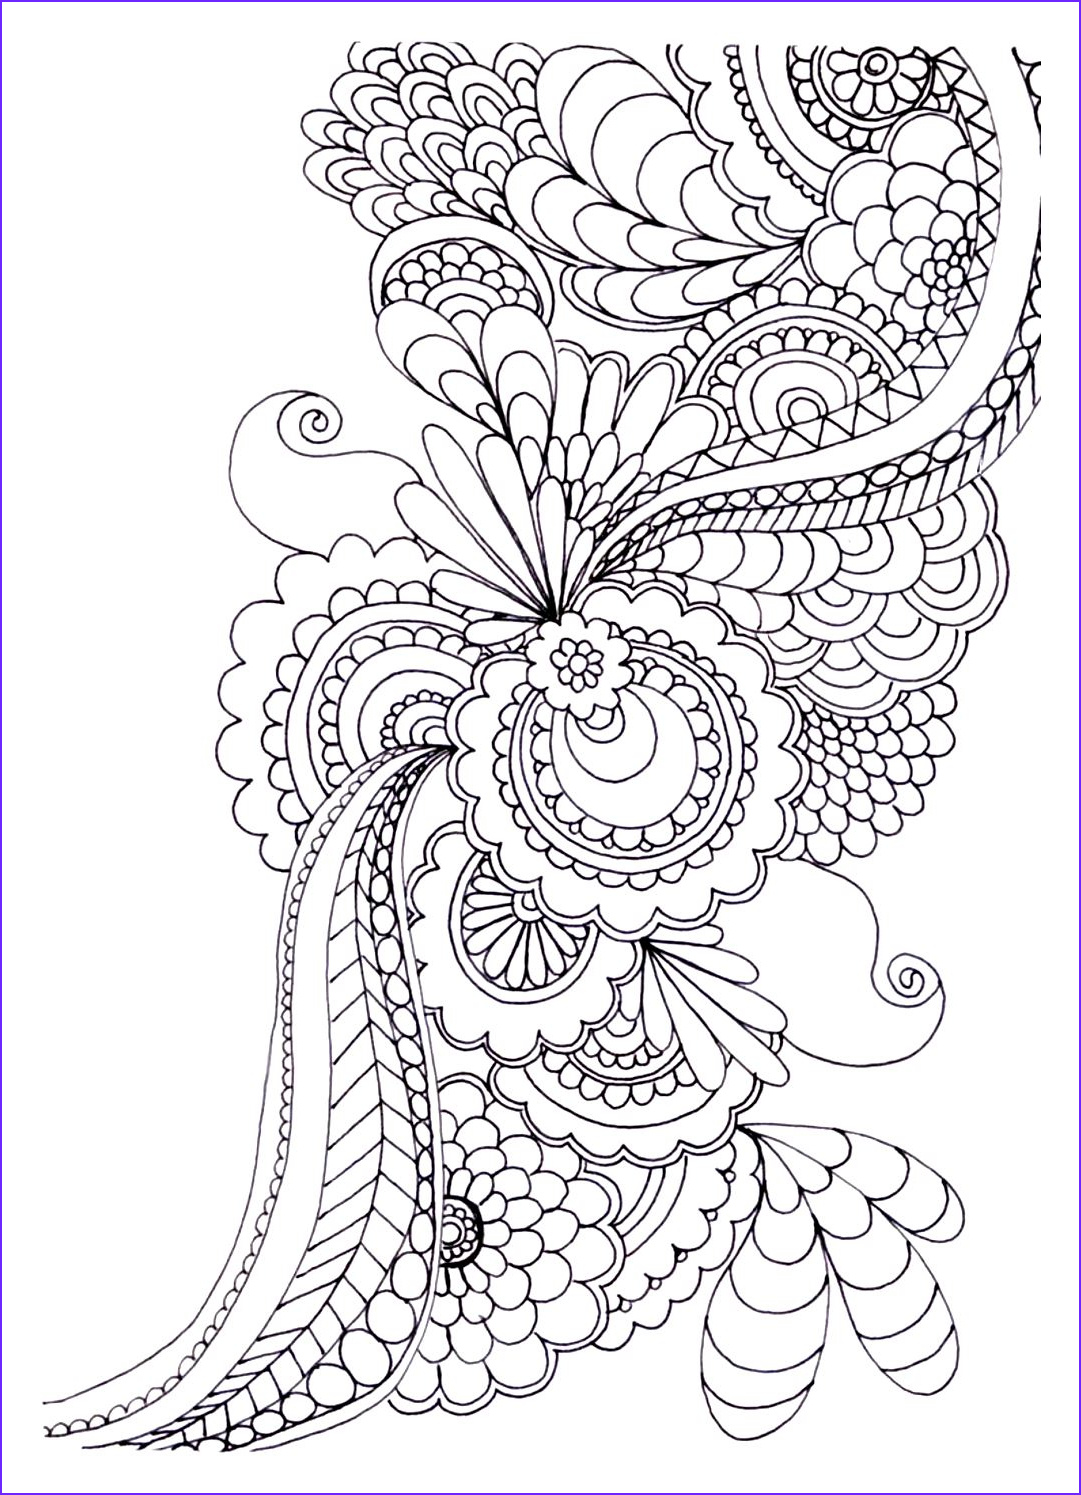 Coloring Pictures for Adults Luxury Photos 20 Free Adult Colouring Pages the organised Housewife